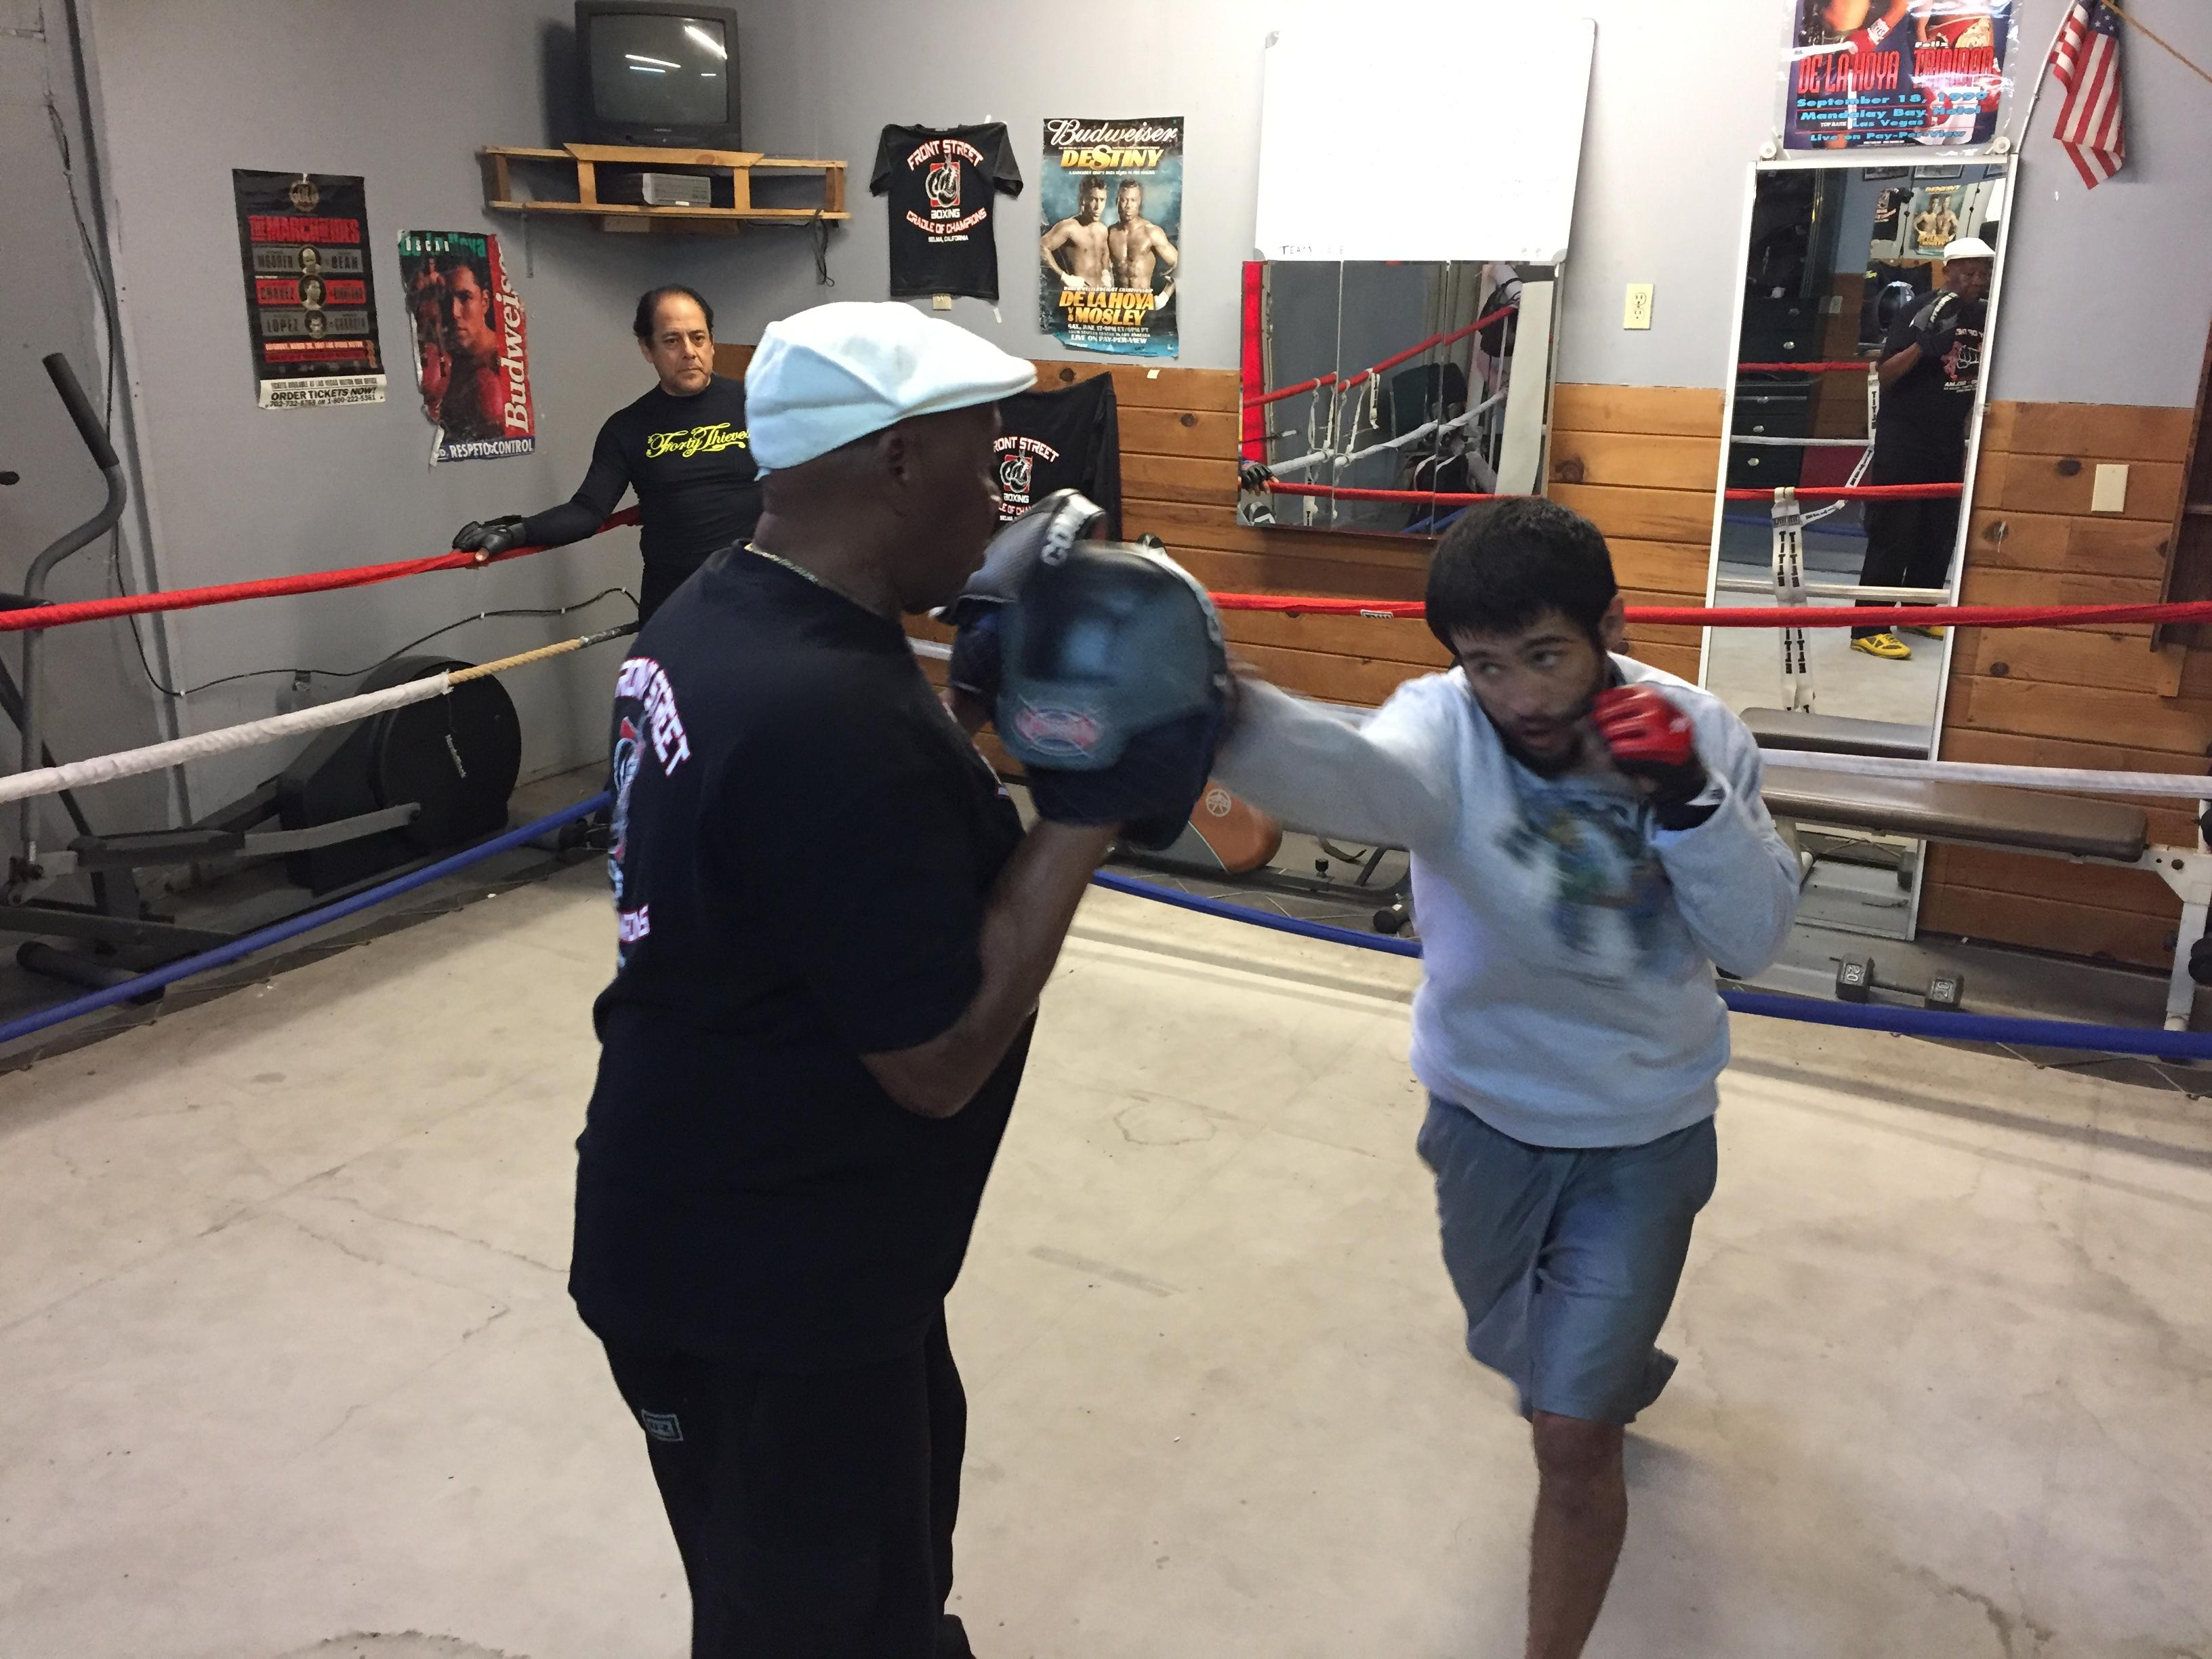 Fierro grew up wrestling, but has been honing technique and learning the stand up aspect of mixed martial arts for the last 3+ years.